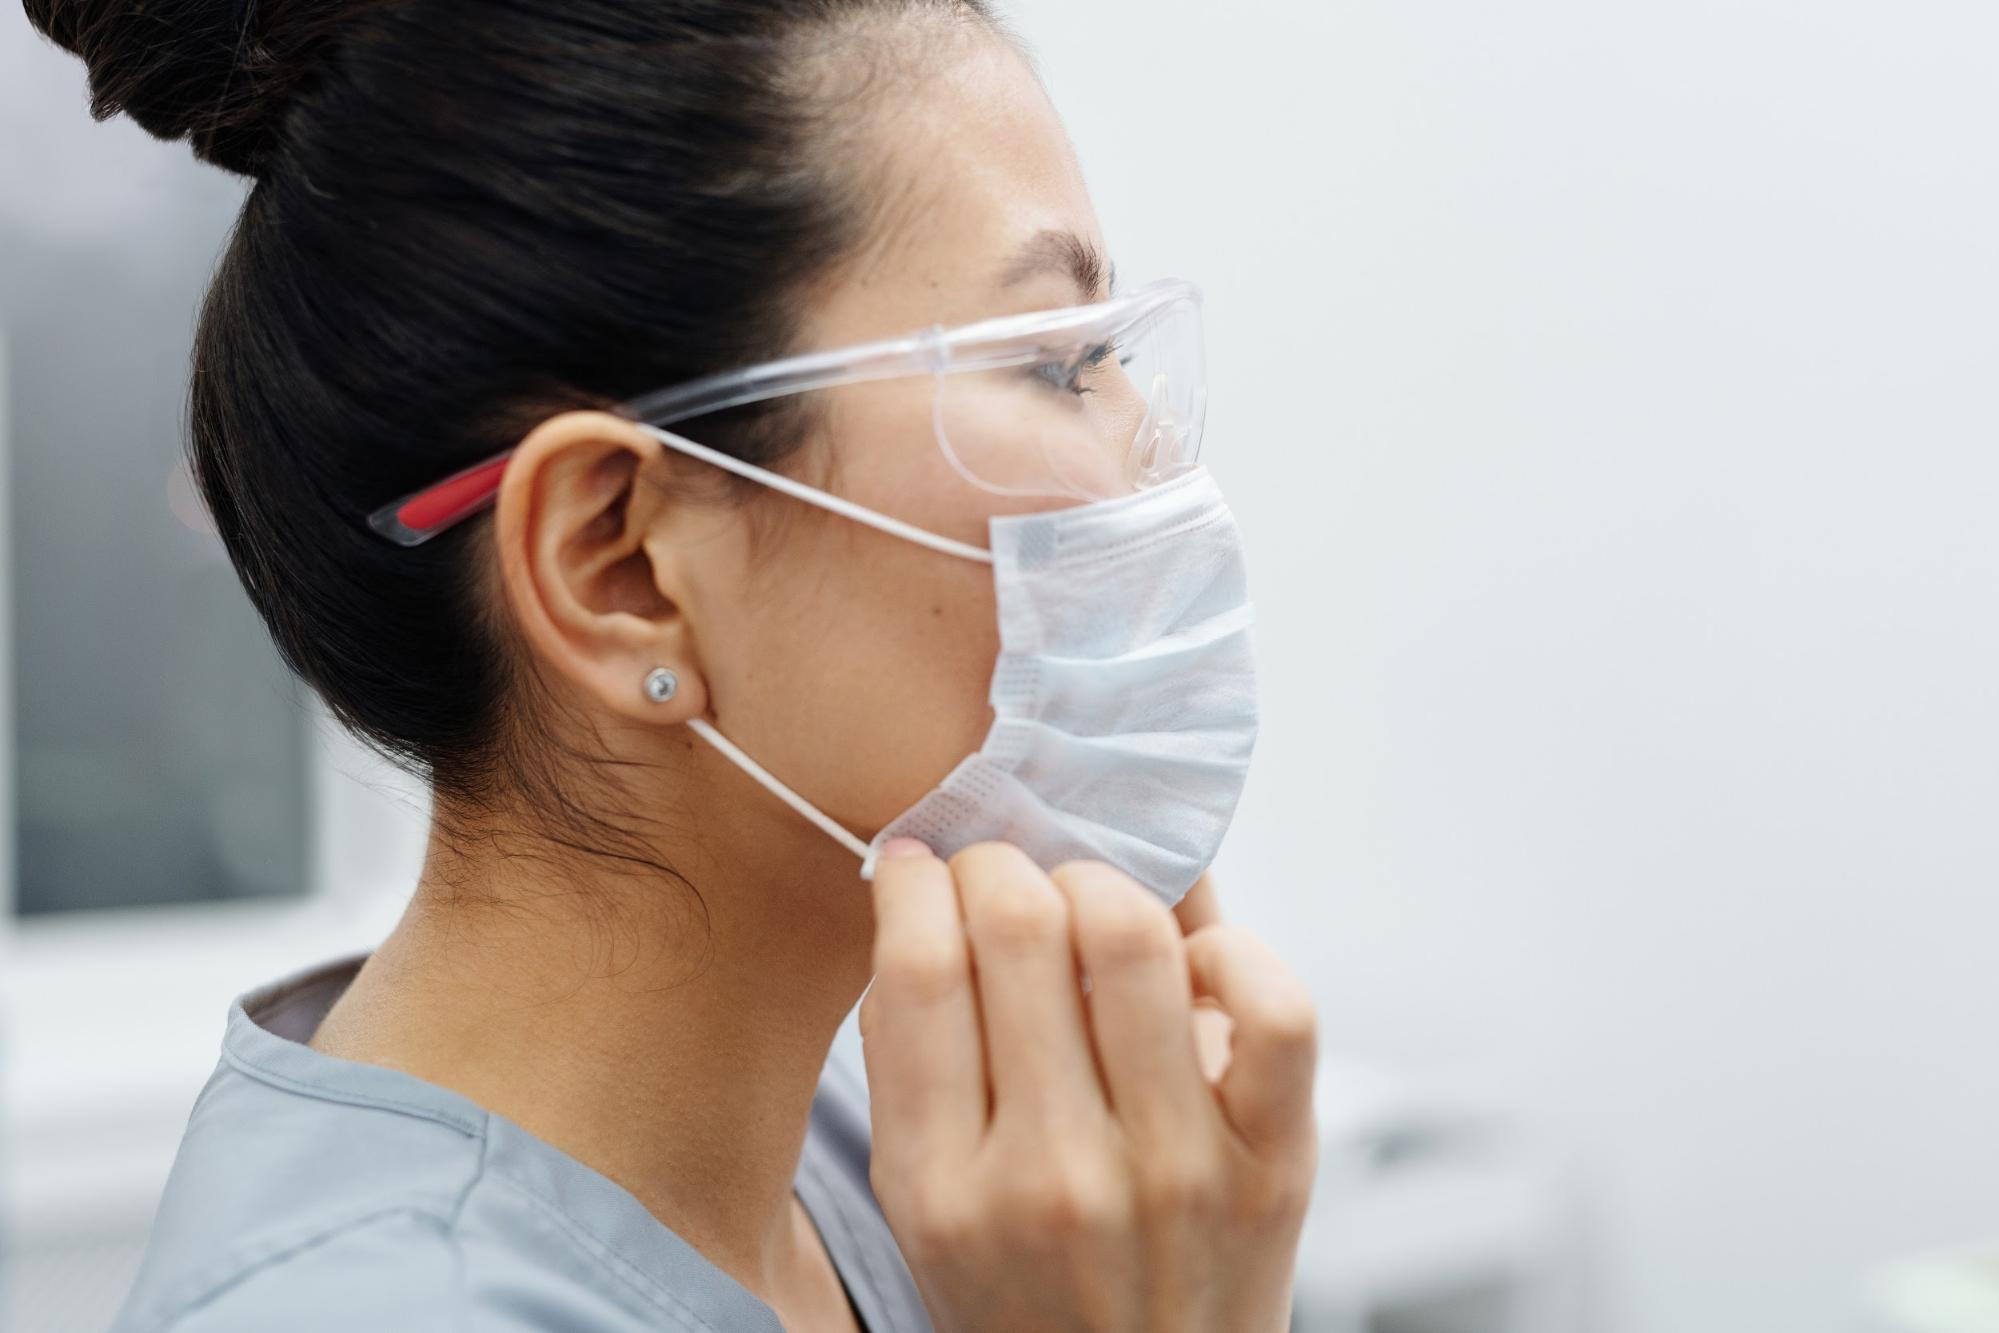 A healthcare employee puts on personal protective equipment.